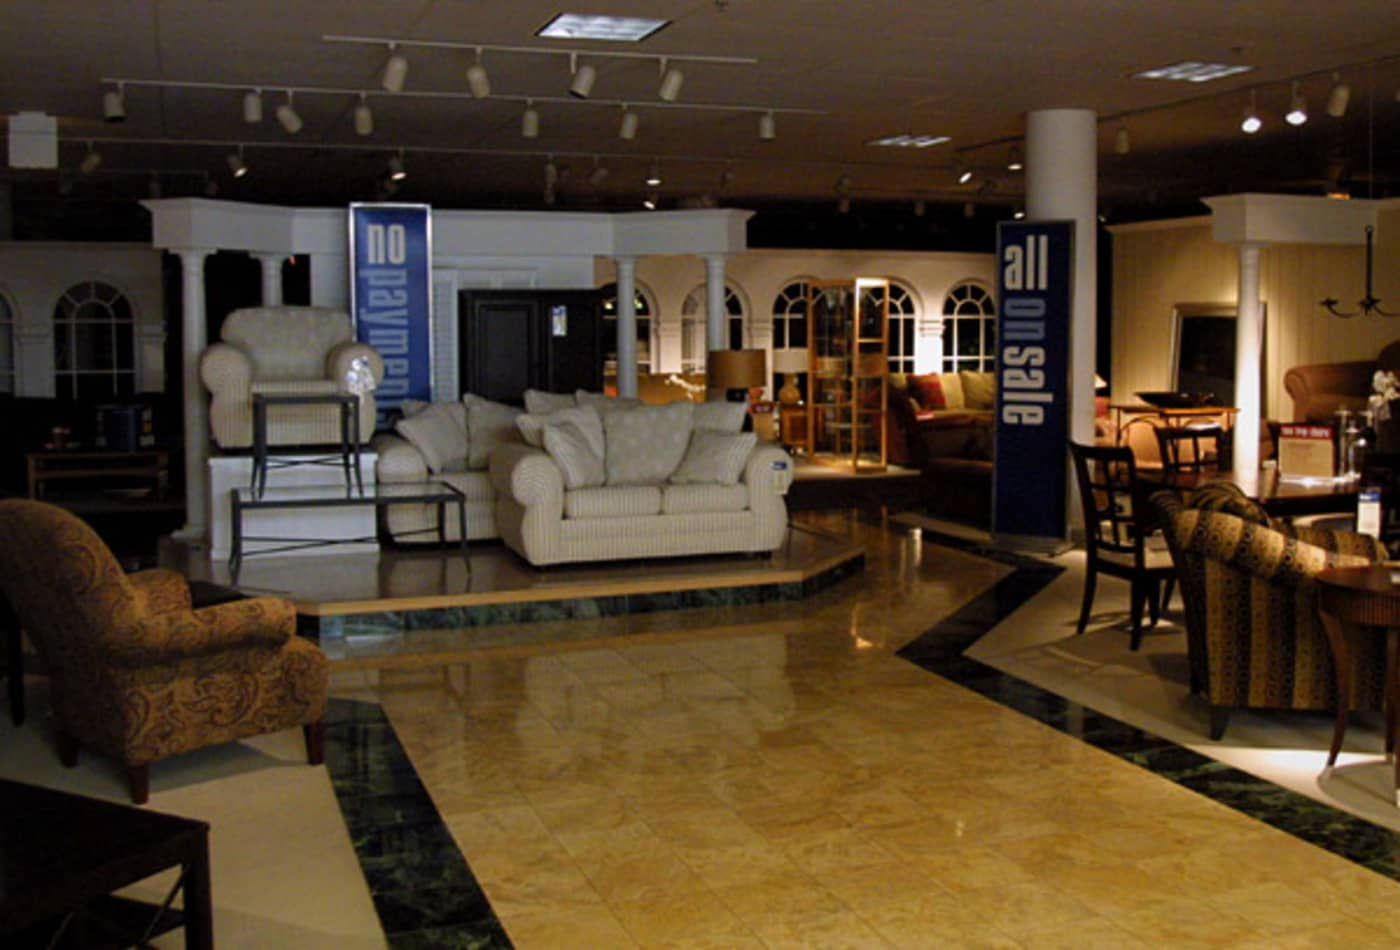 Furniture-Stores-Industries-Hit-Hardest-Recession-CNBC.jpg